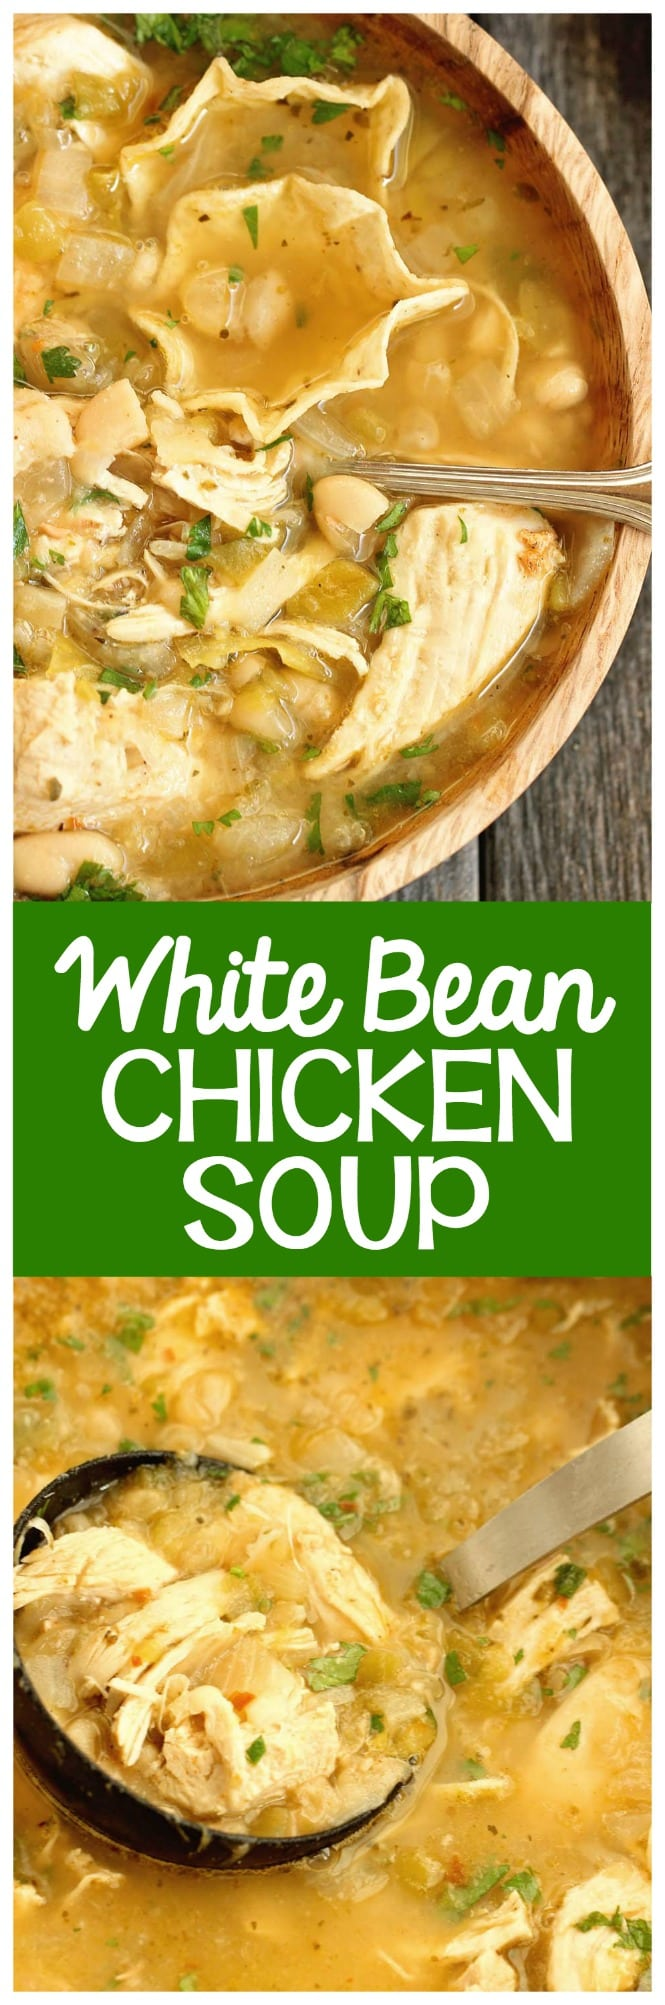 White Bean Chicken Soup - A healthy comforting soup recipe filled with chicken, Great Northern beans, green chiles, and tons of flavor!  It's a great recipe for dinner and for make-ahead lunches for the week! Plus, it's low-carb!